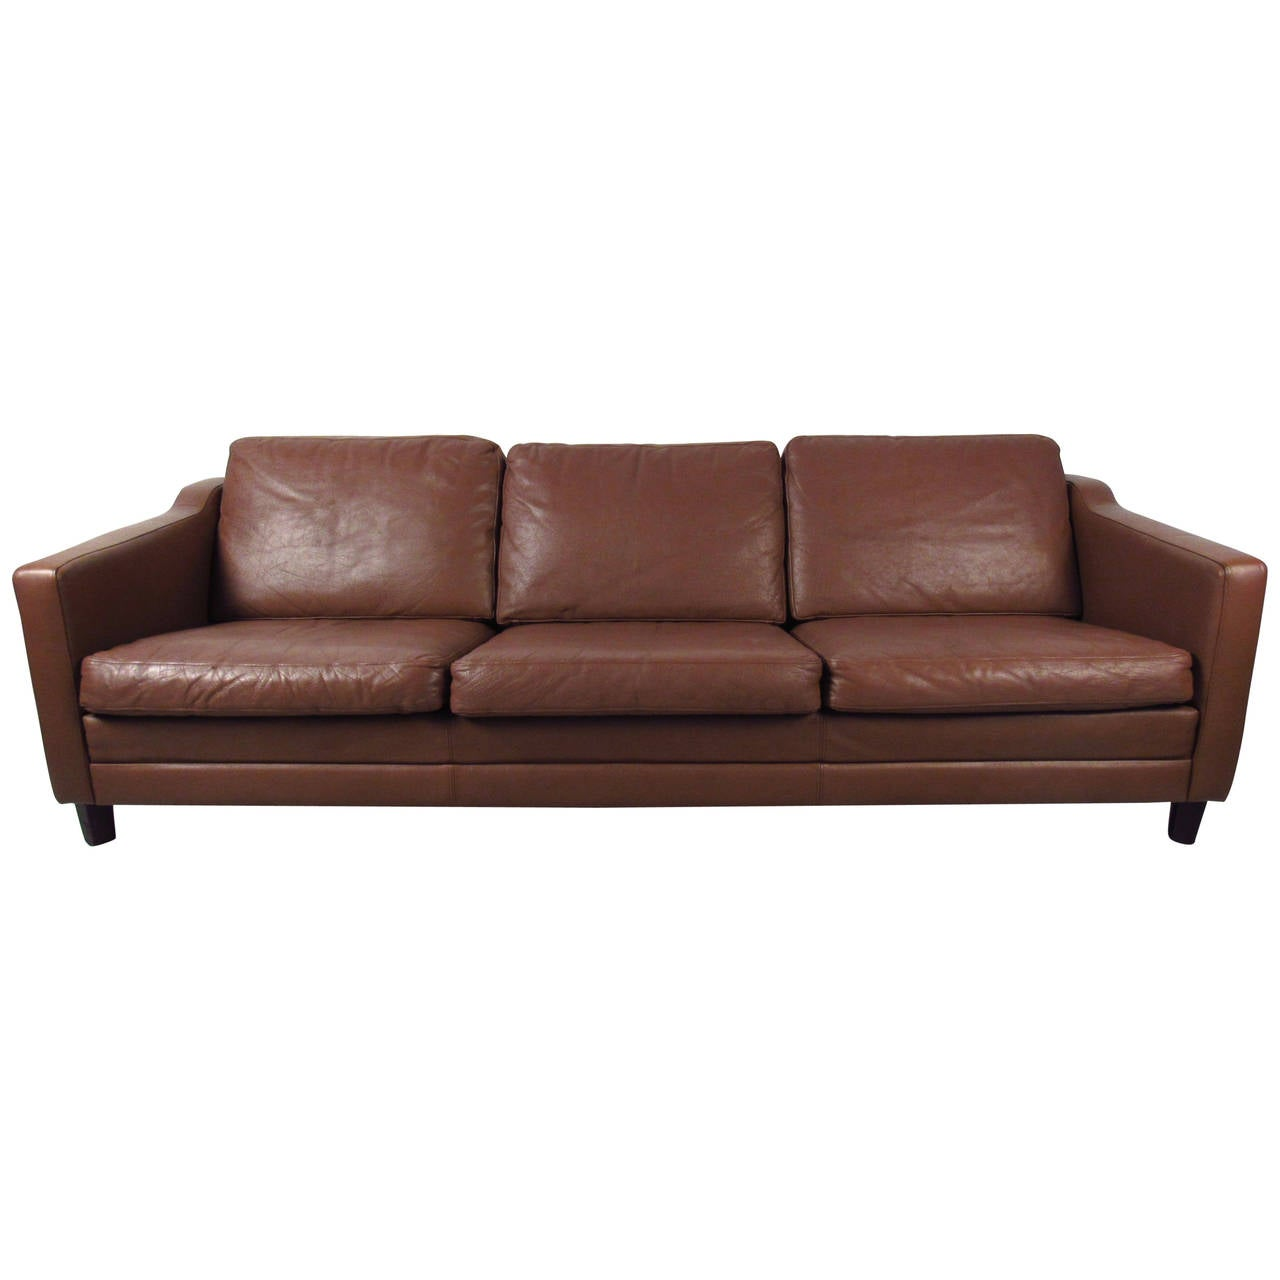 Beau Vintage Leather Sofa In The Style Of Børge Mogensen For Sale